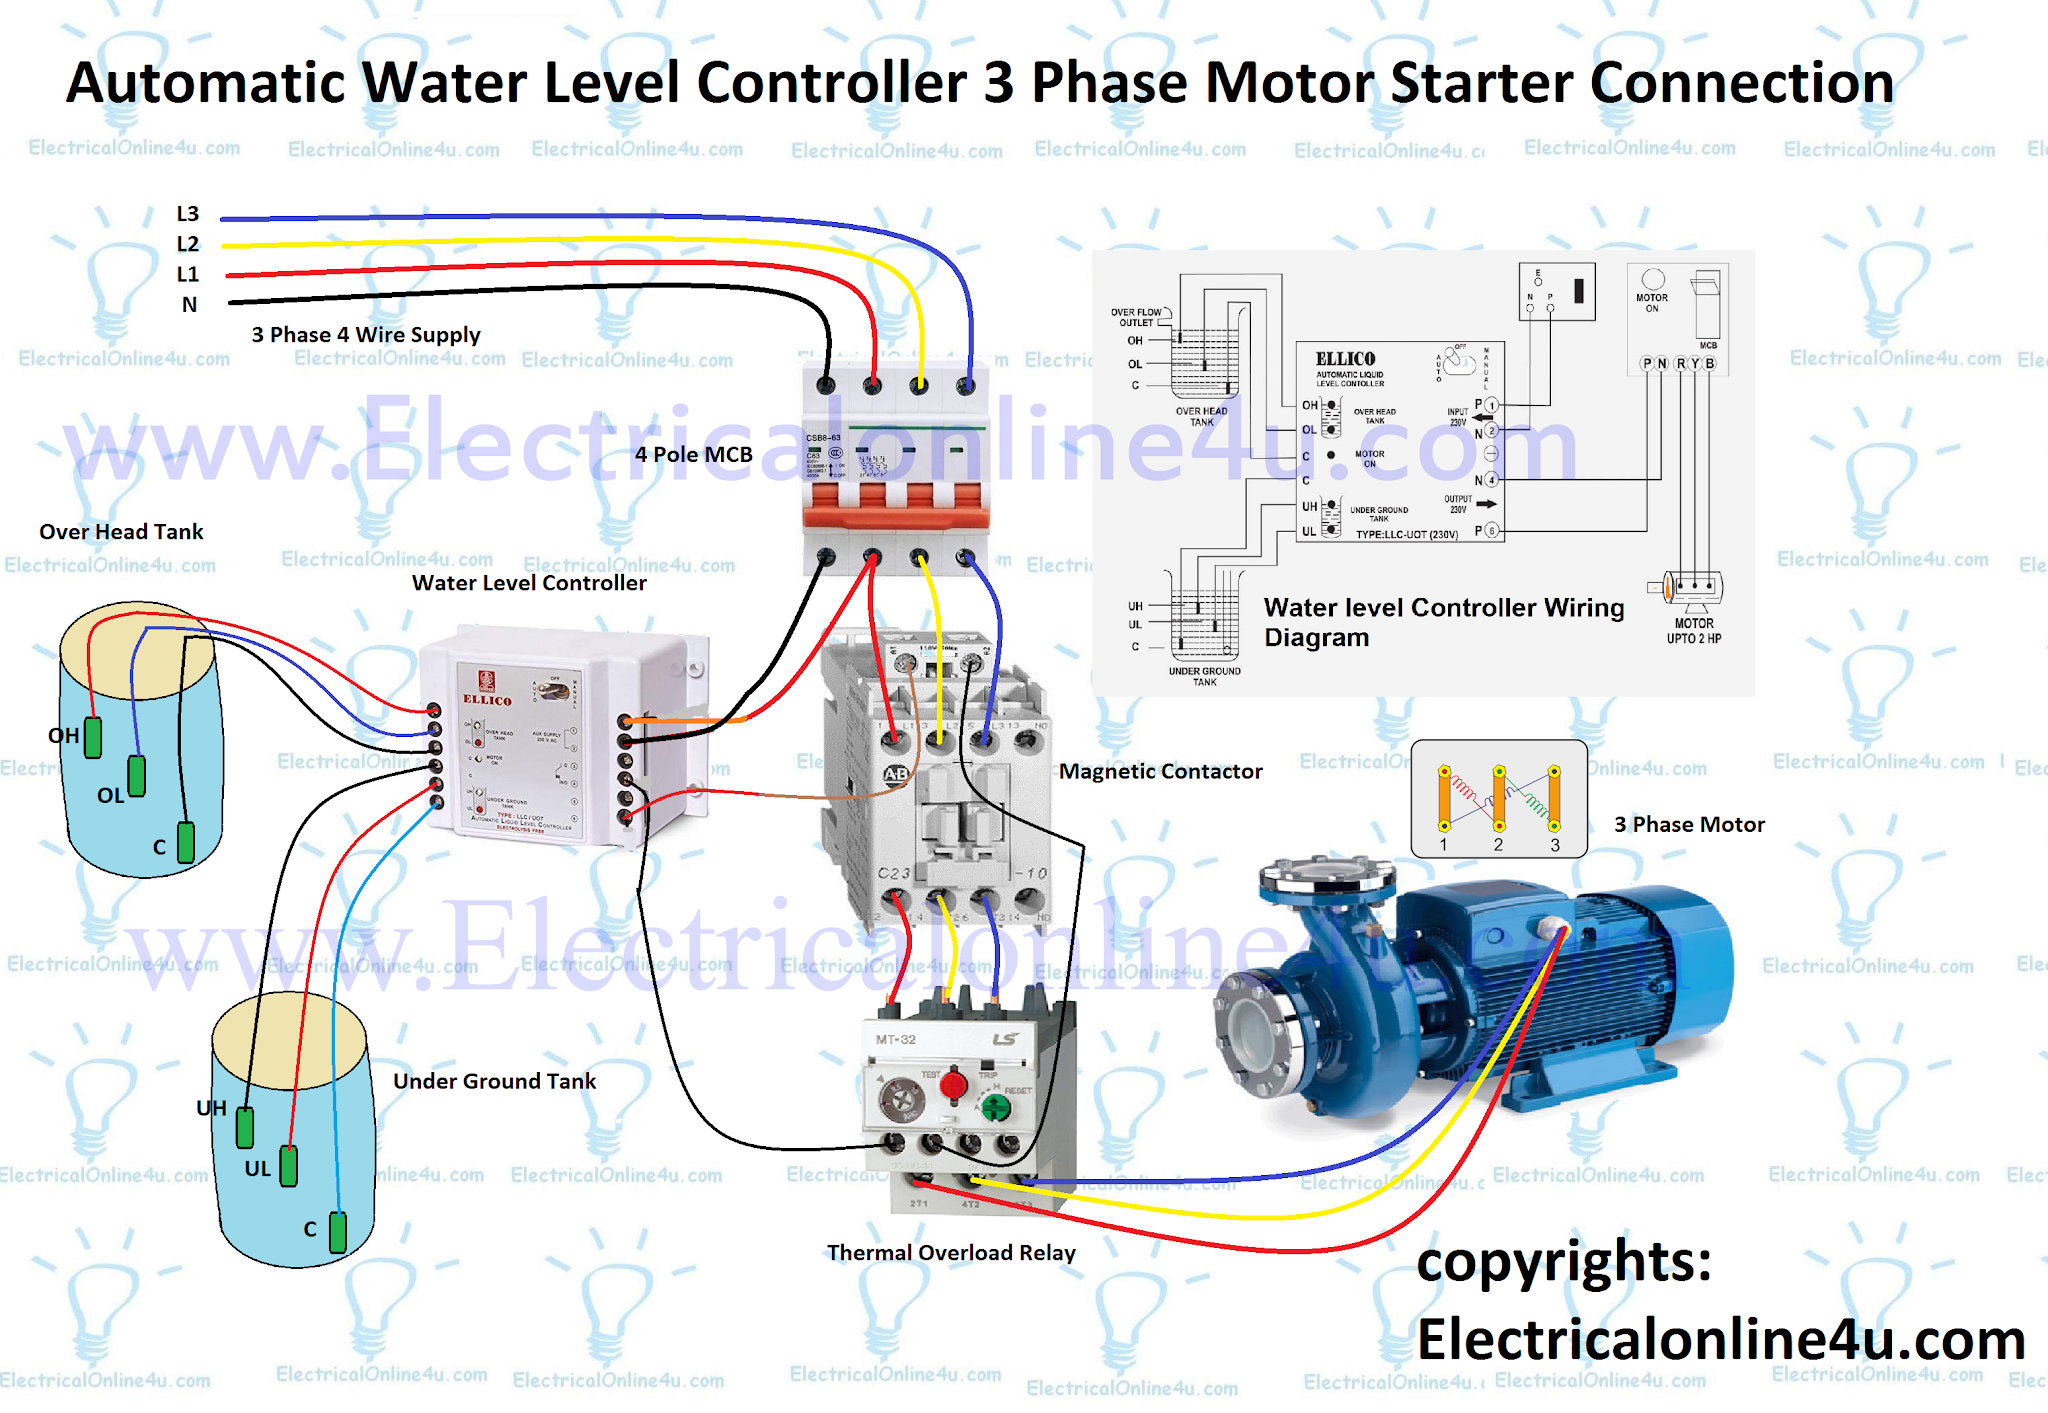 Automatic Water Level Controller Wiring Diagram For 3 phase -  Electricalonline4u | Pump Motor Wiring Diagram |  | Electricalonline4u